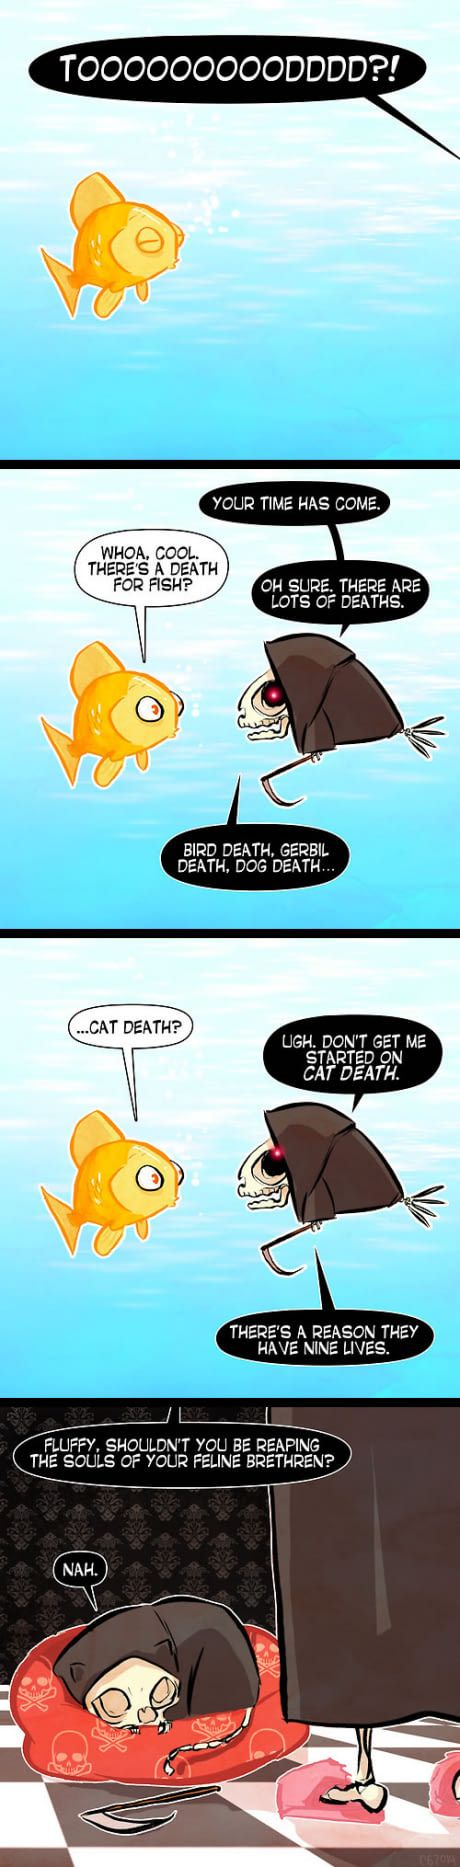 There's a Reason Cats Have Nine Lives...